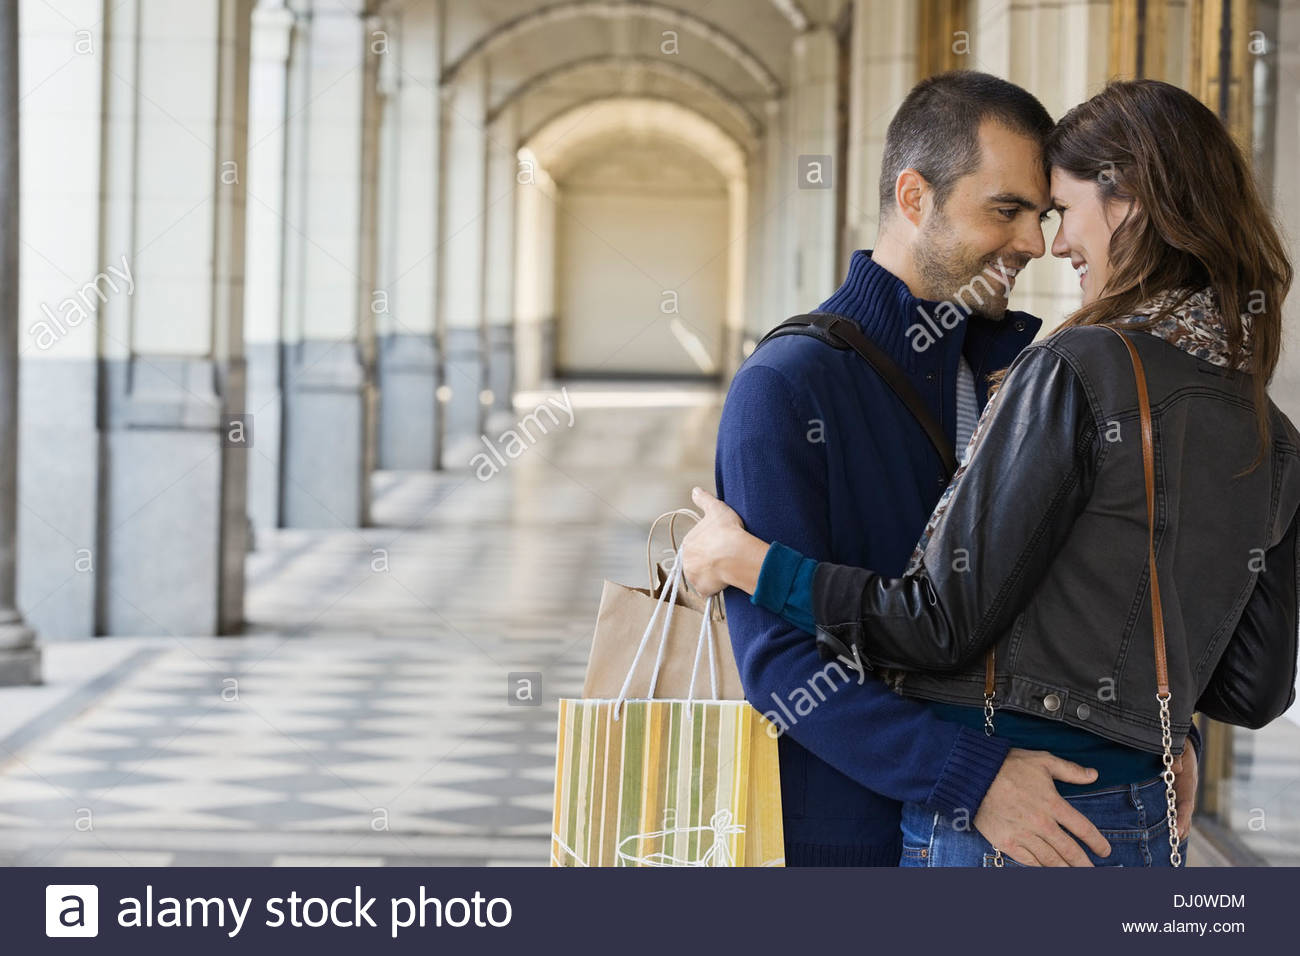 Affectionate couple looking at each other - Stock Image